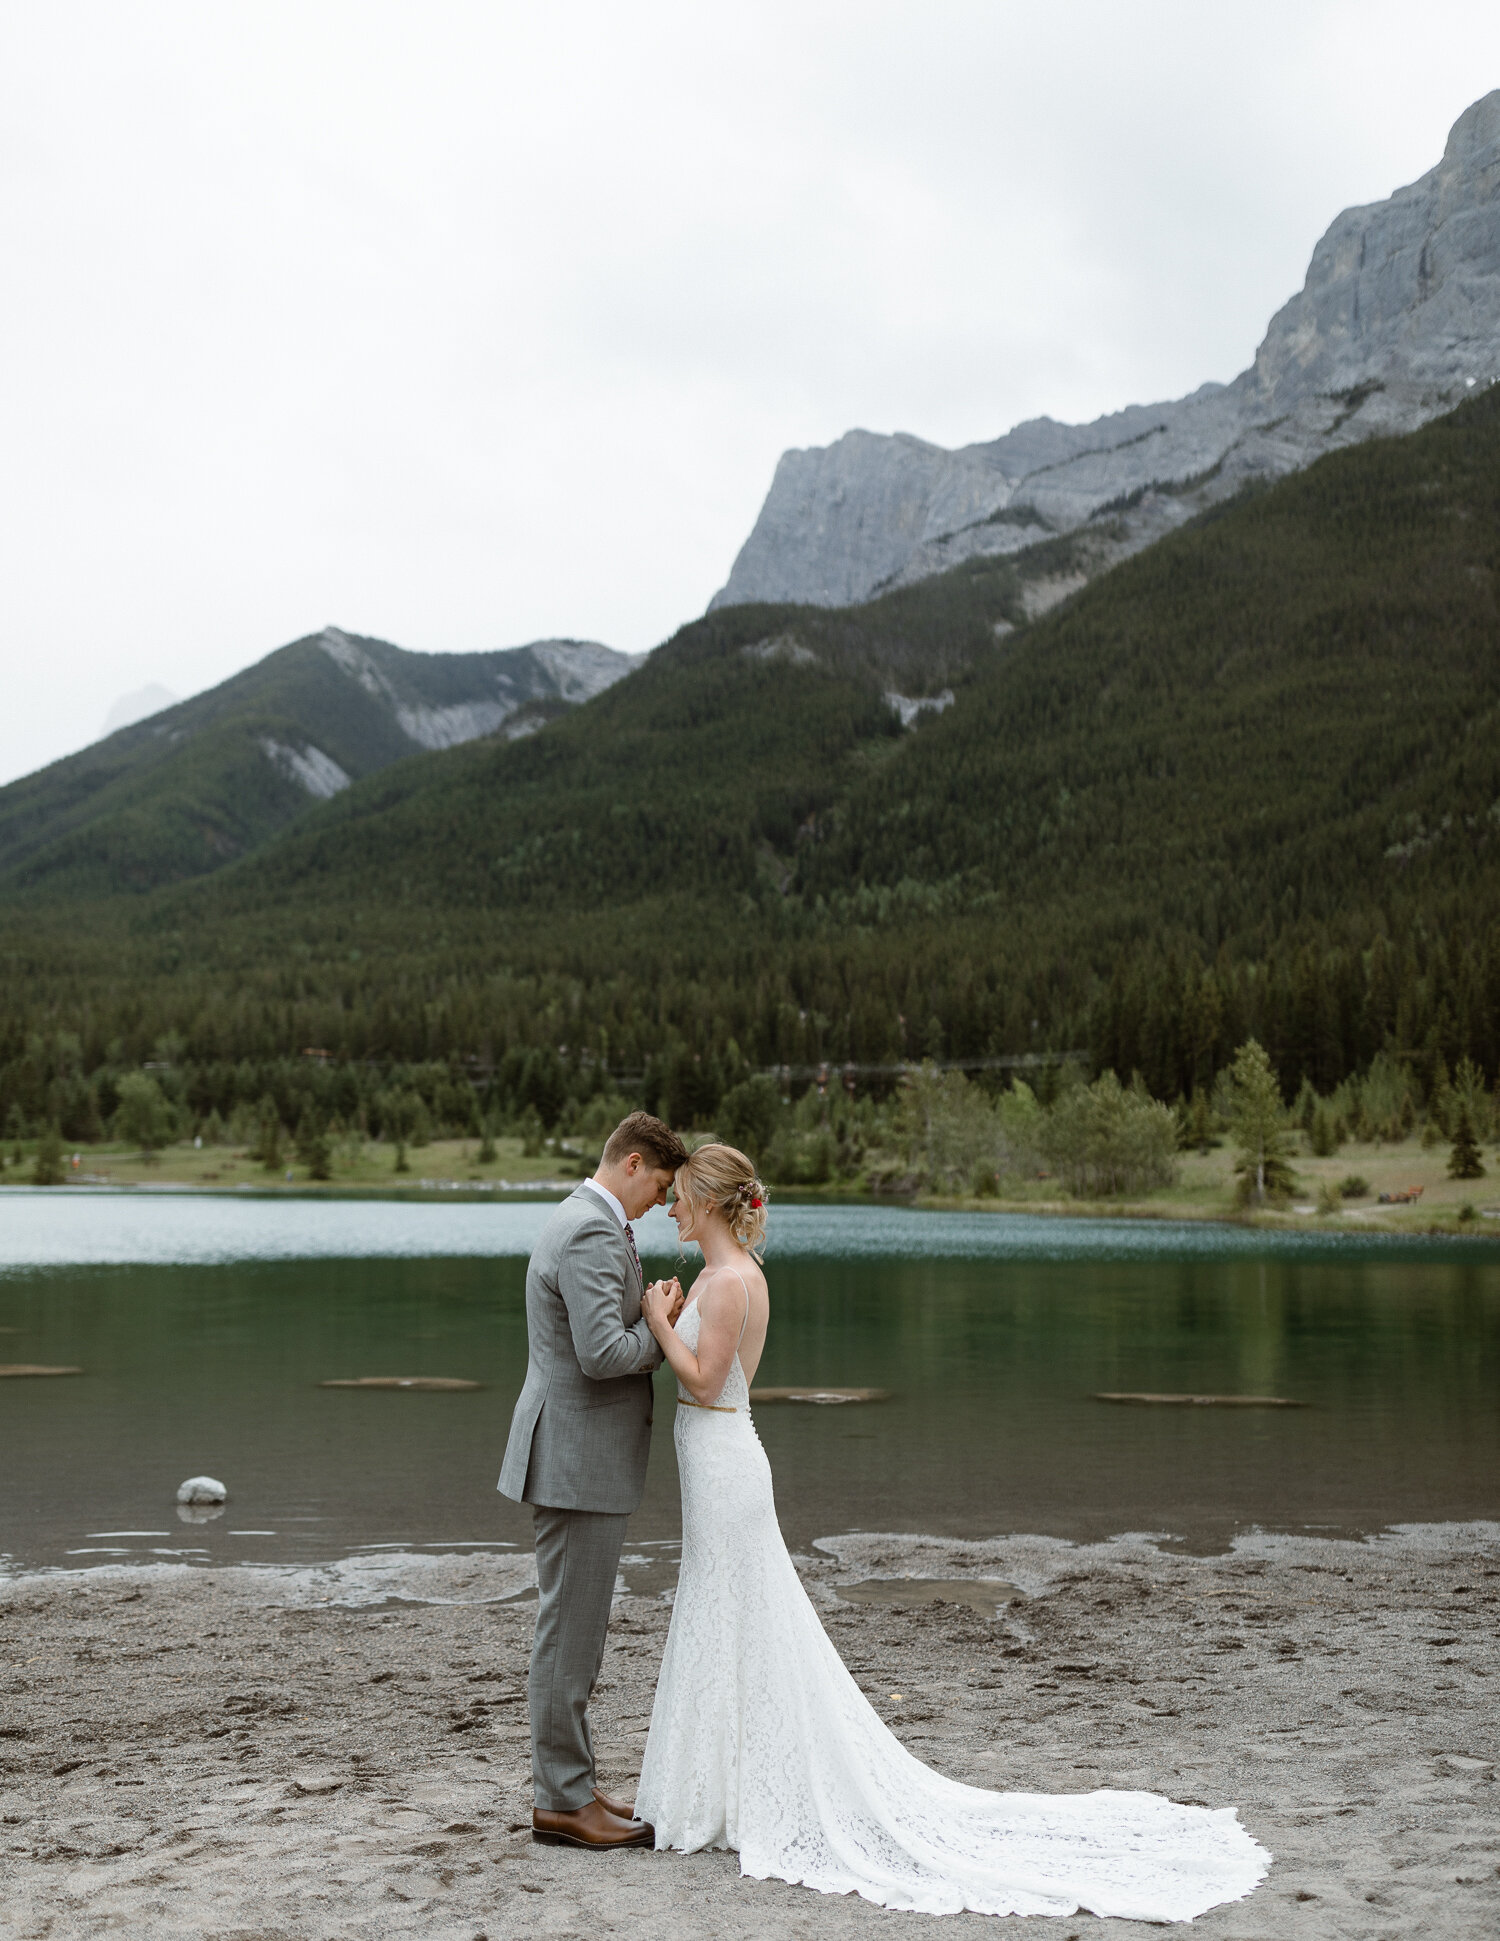 88-Canmore-Alberta-Real-Wedding-Best-Wedding-Photographers-127.JPG